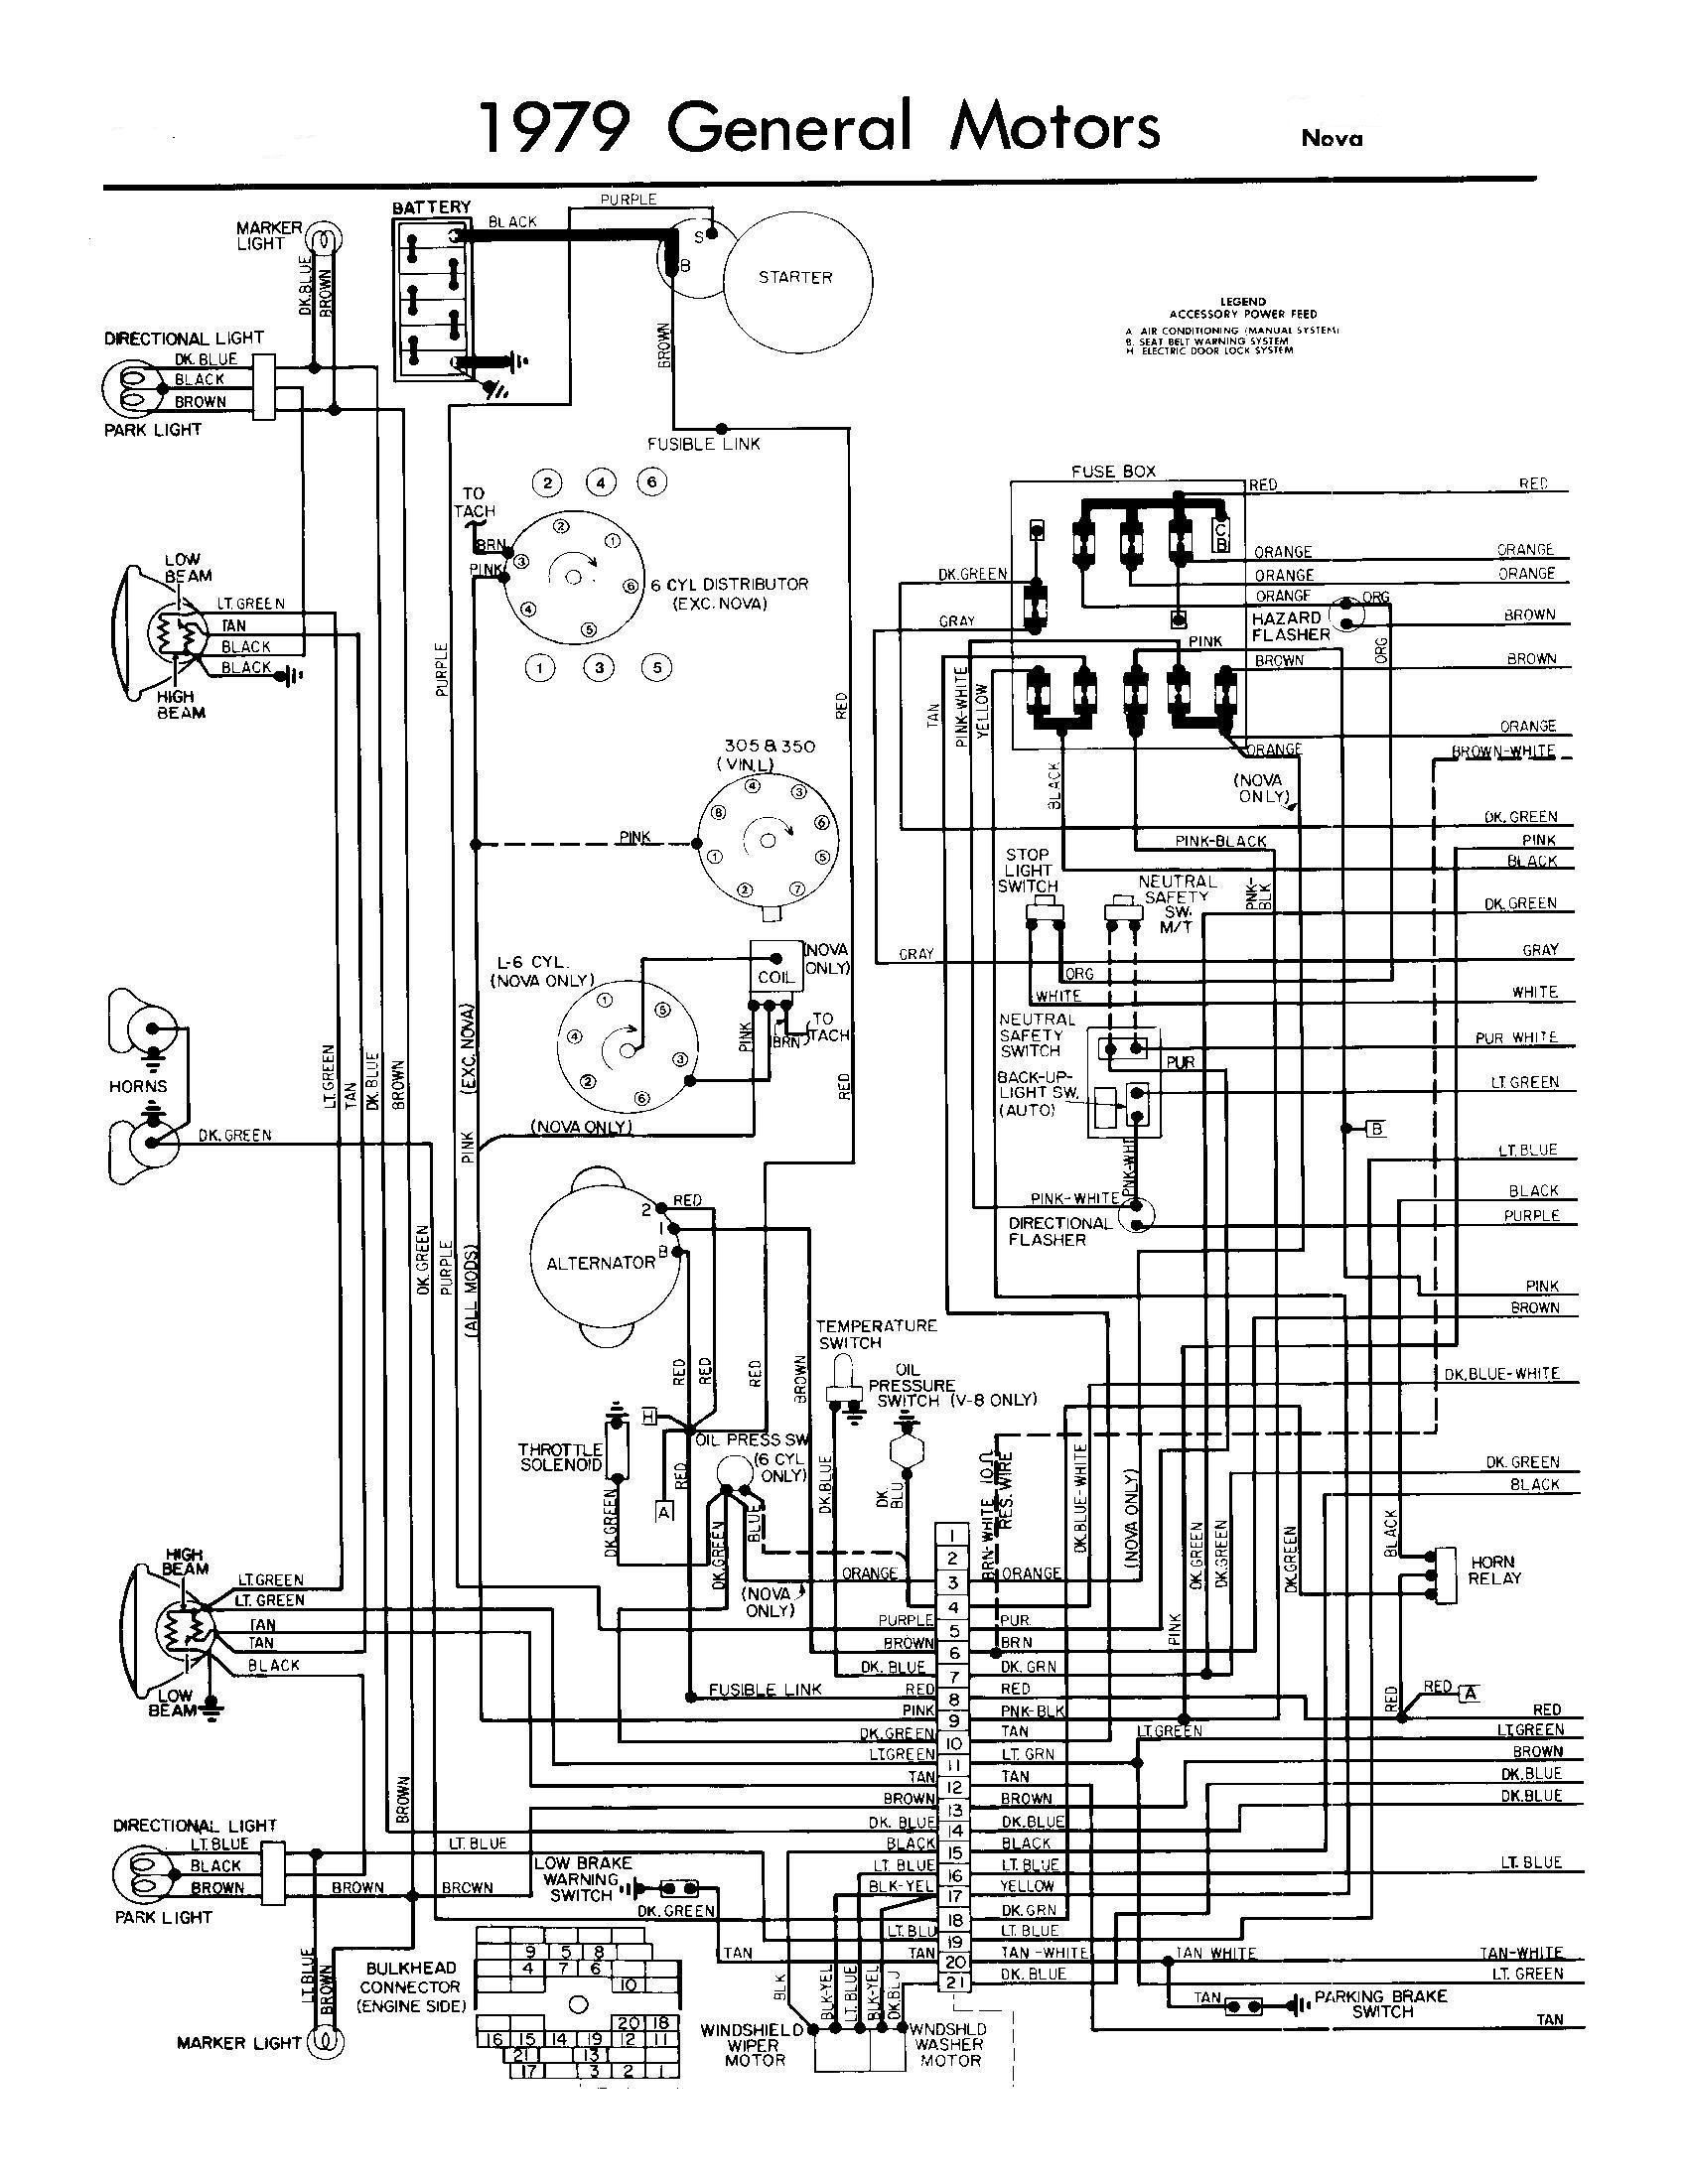 [SCHEMATICS_4FD]  Wiring Diagram Opel Blazer - 1990 300zx Engine Wiring Diagram Schematic for  Wiring Diagram Schematics | In A 1999 Blazer Engine Wiring Diagram |  | Wiring Diagram and Schematics